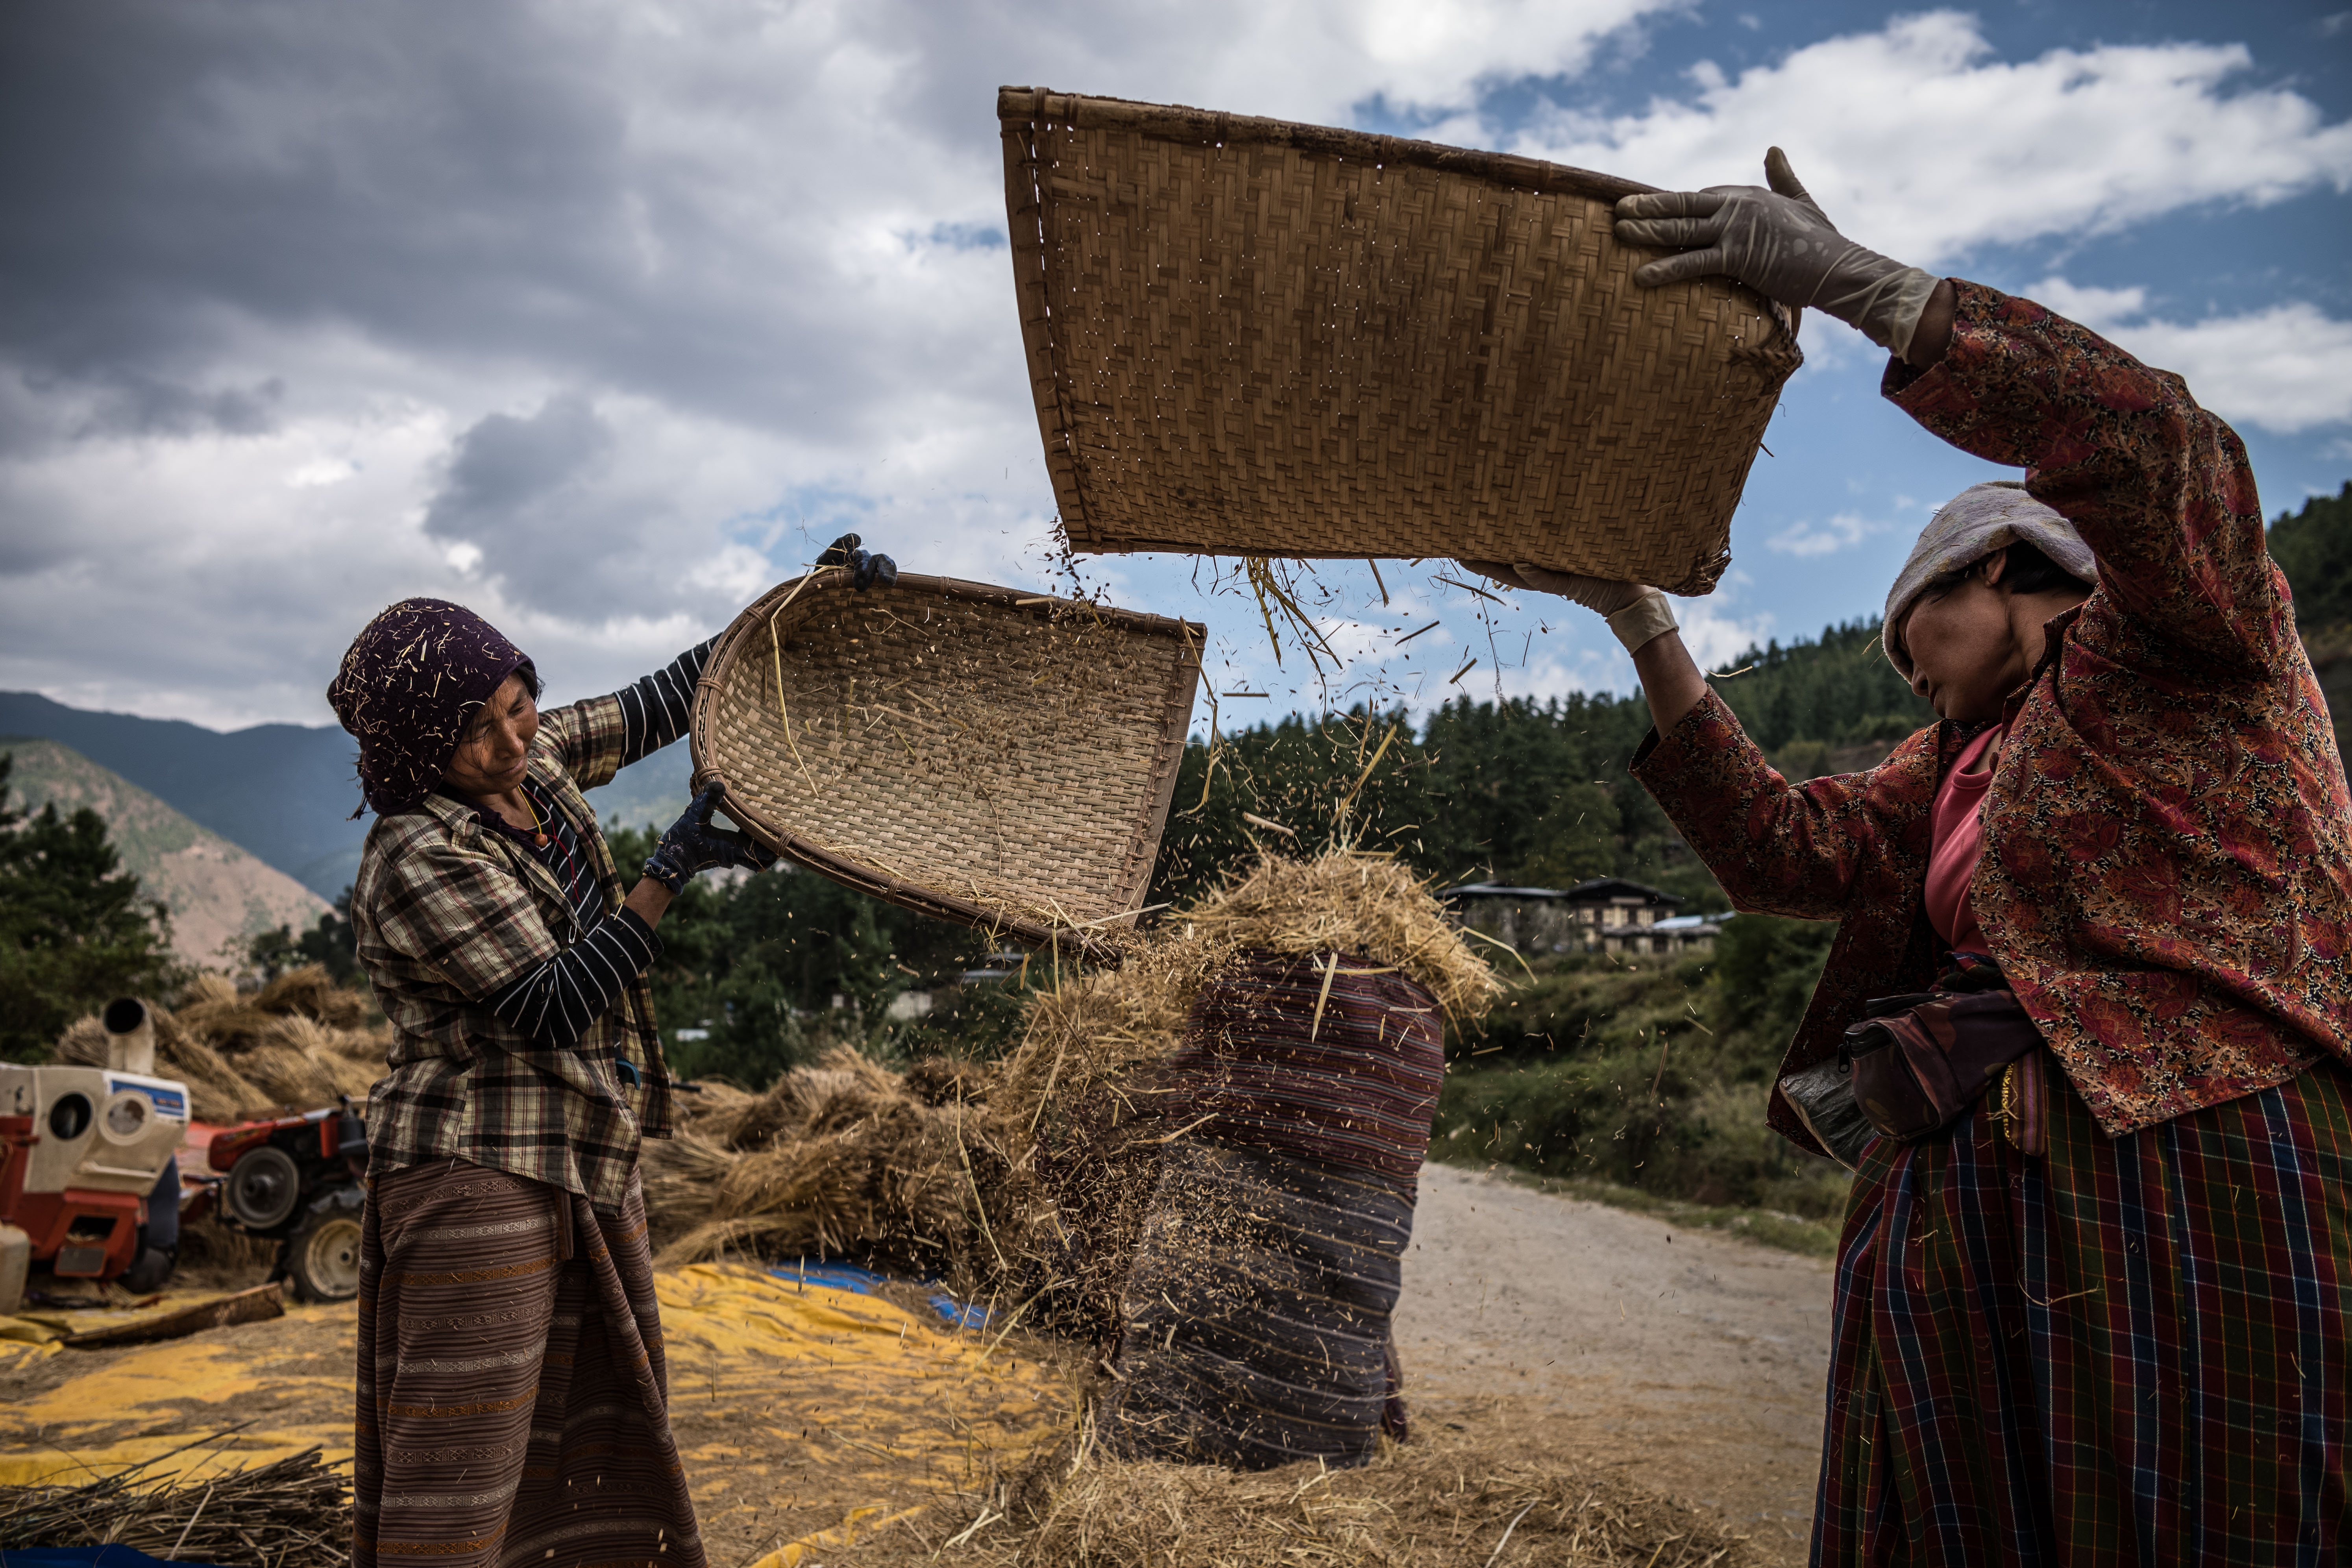 Rice winnowing in Bhutan